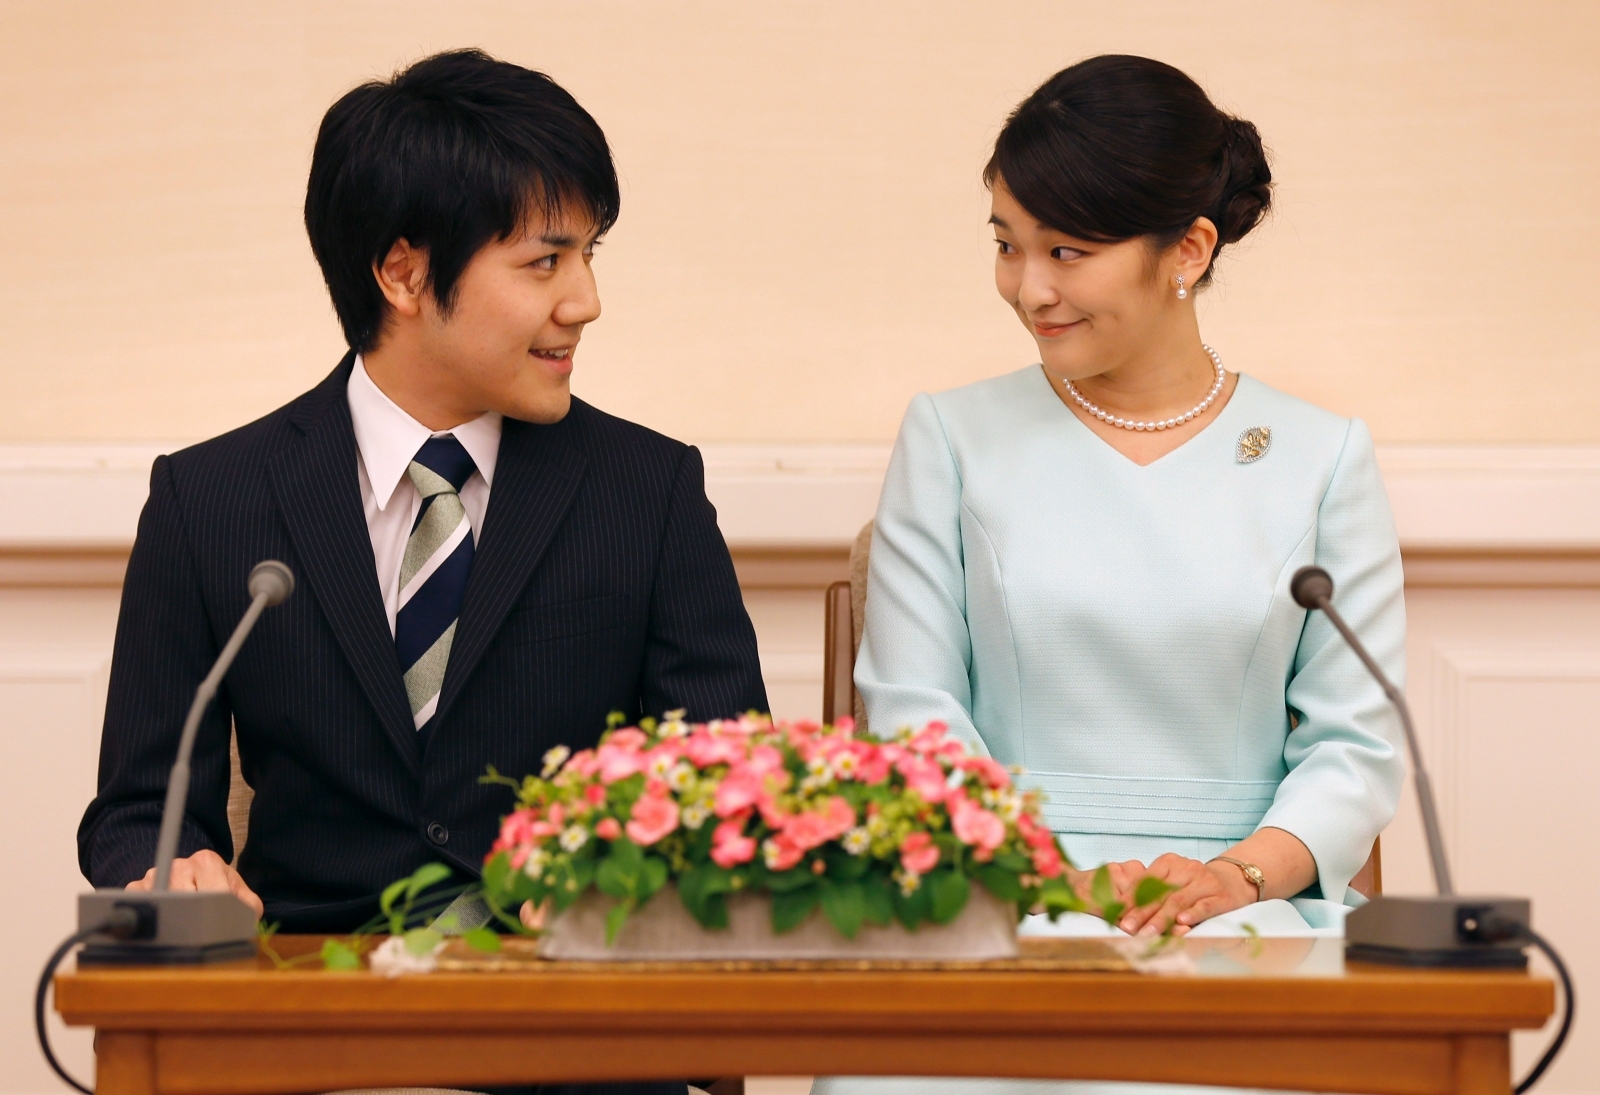 Why has Japan's Princess Mako made a decision to postpone her wedding to 2020?